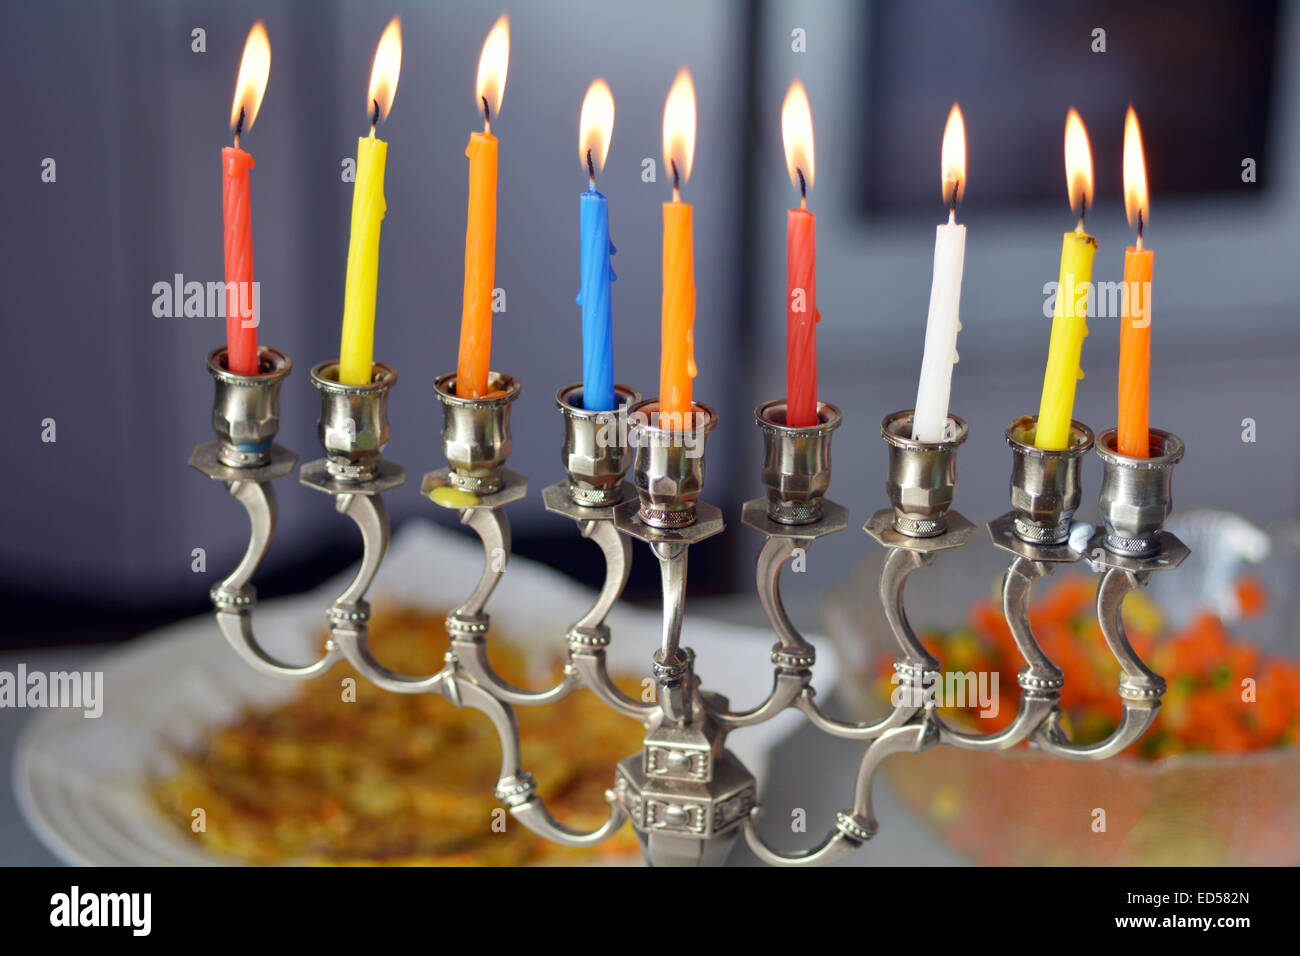 Hanukkah menorah lit with eight candles during dinner celebration at the last day of Hanukah. - Stock Image